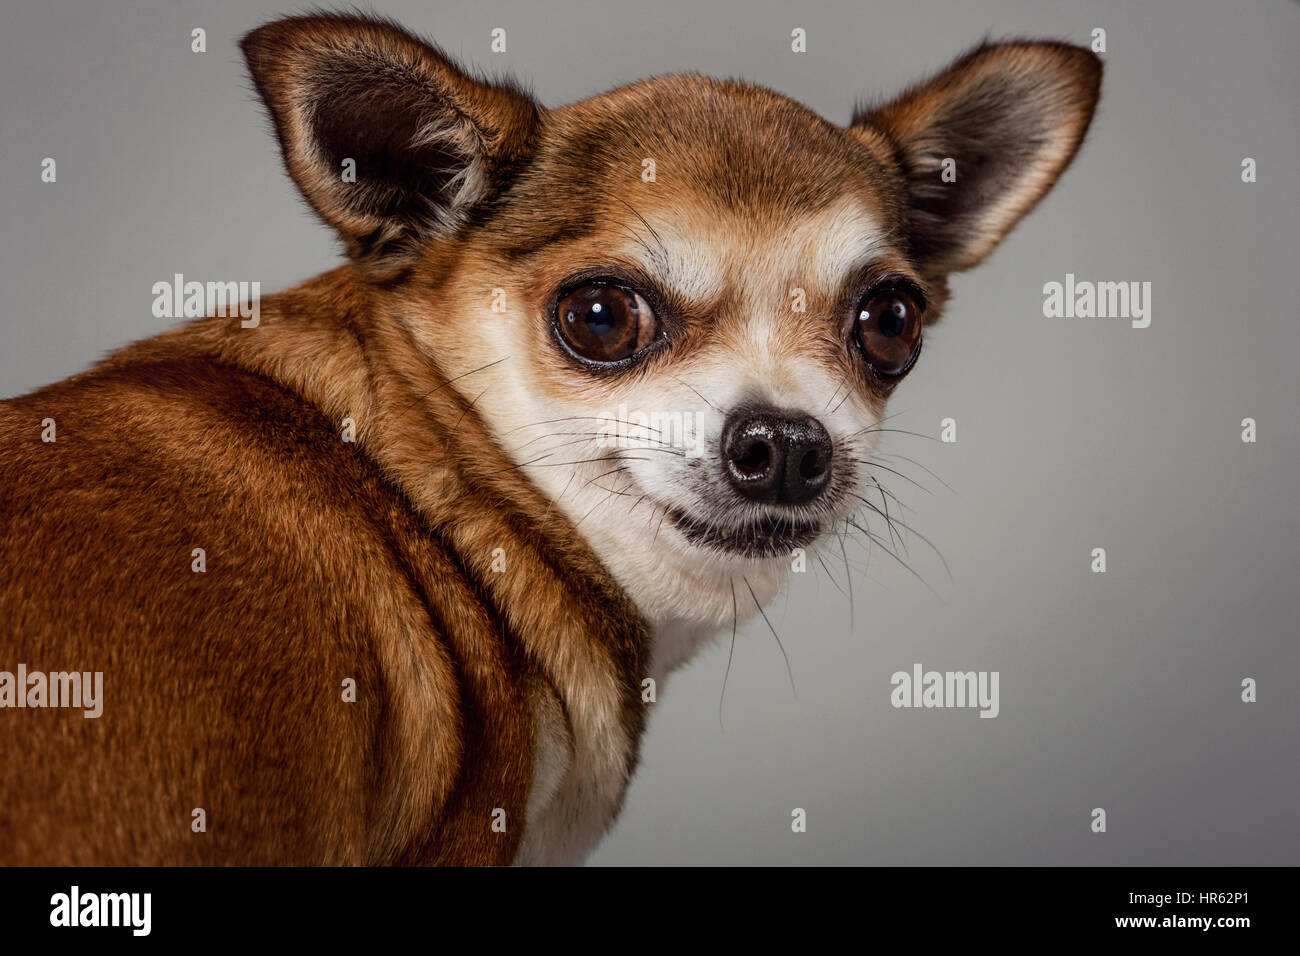 Studio portrait of a fawn-colored chihuahua looking over its shoulder with a half-smile. - Stock Image